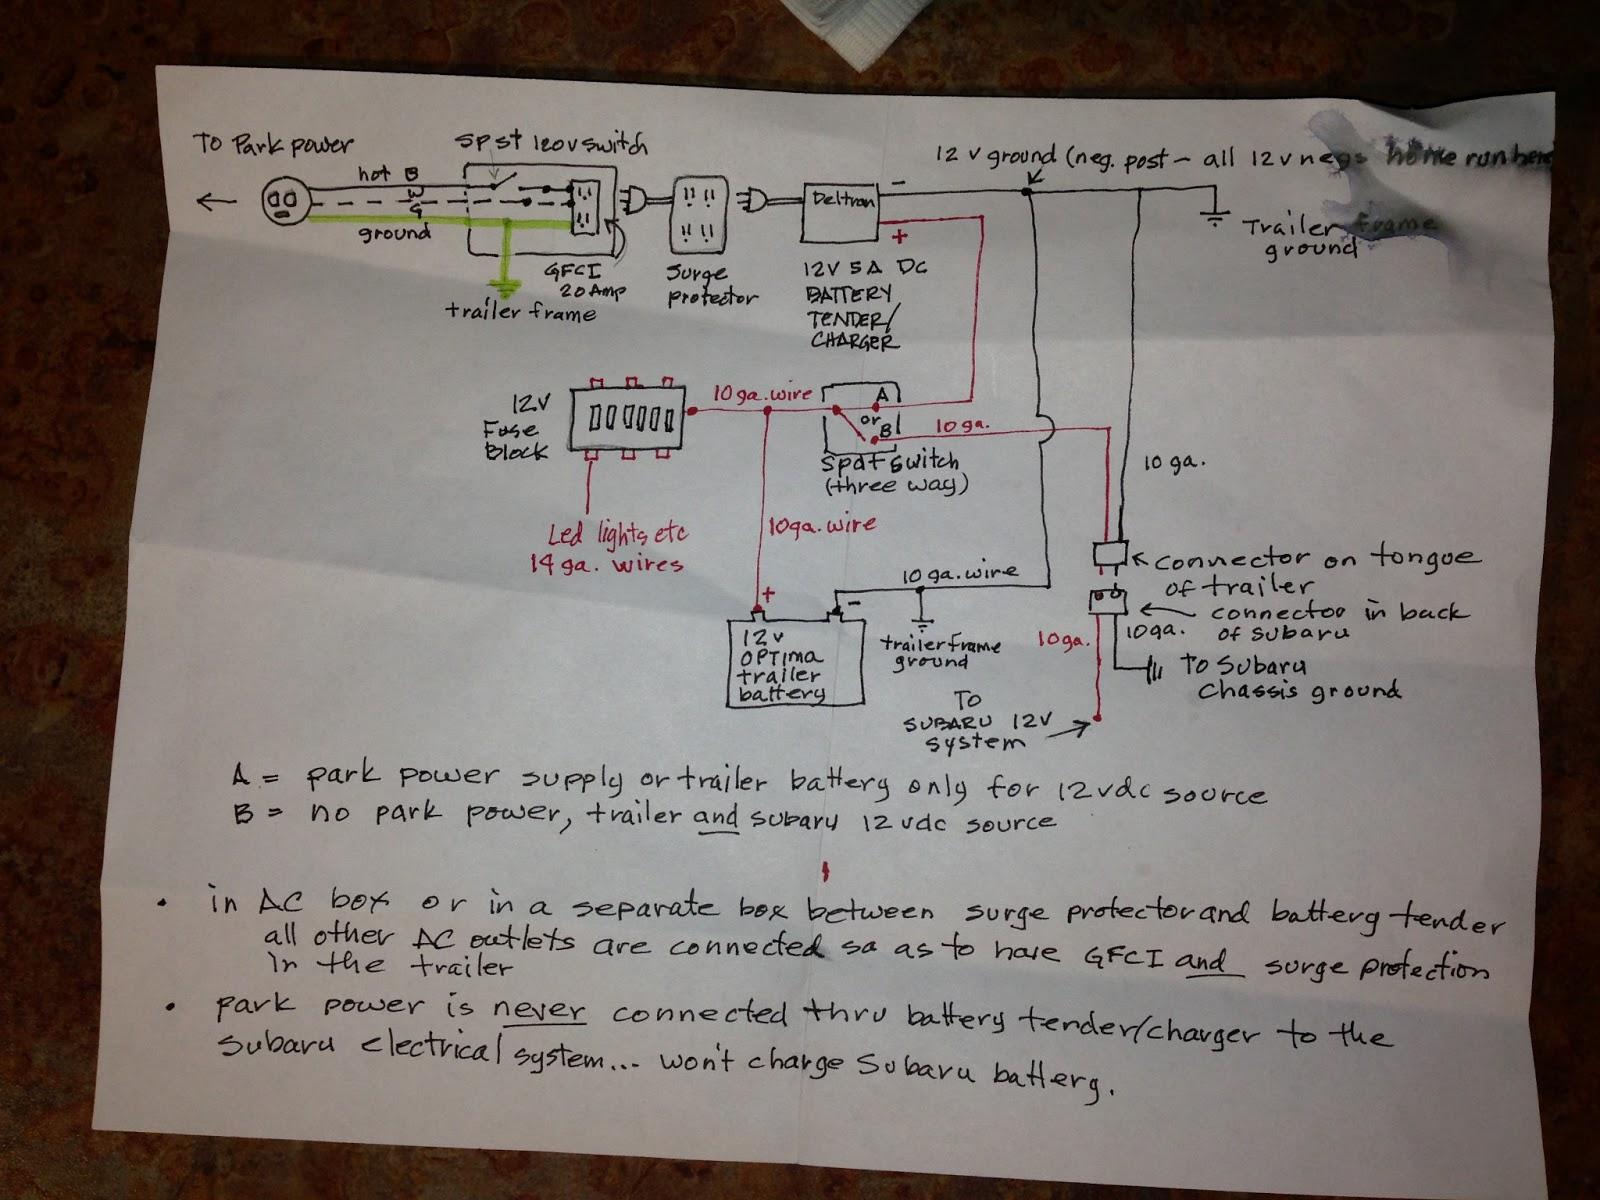 wiring diagram for teardrop trailer wiring image pimpin pimpin teardrop trailer build blog this that and the on wiring diagram for teardrop trailer